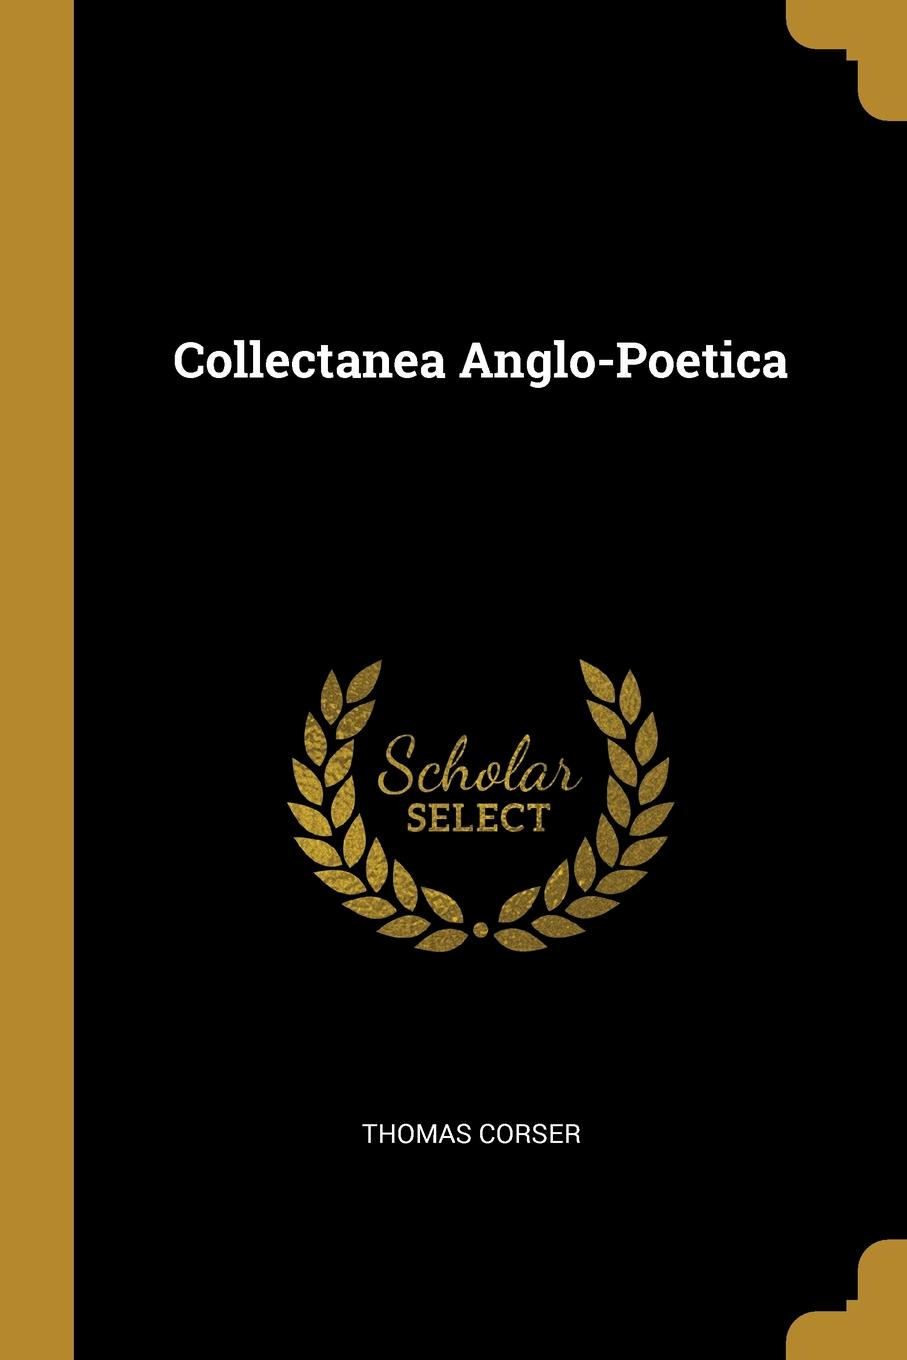 Thomas Corser. Collectanea Anglo-Poetica